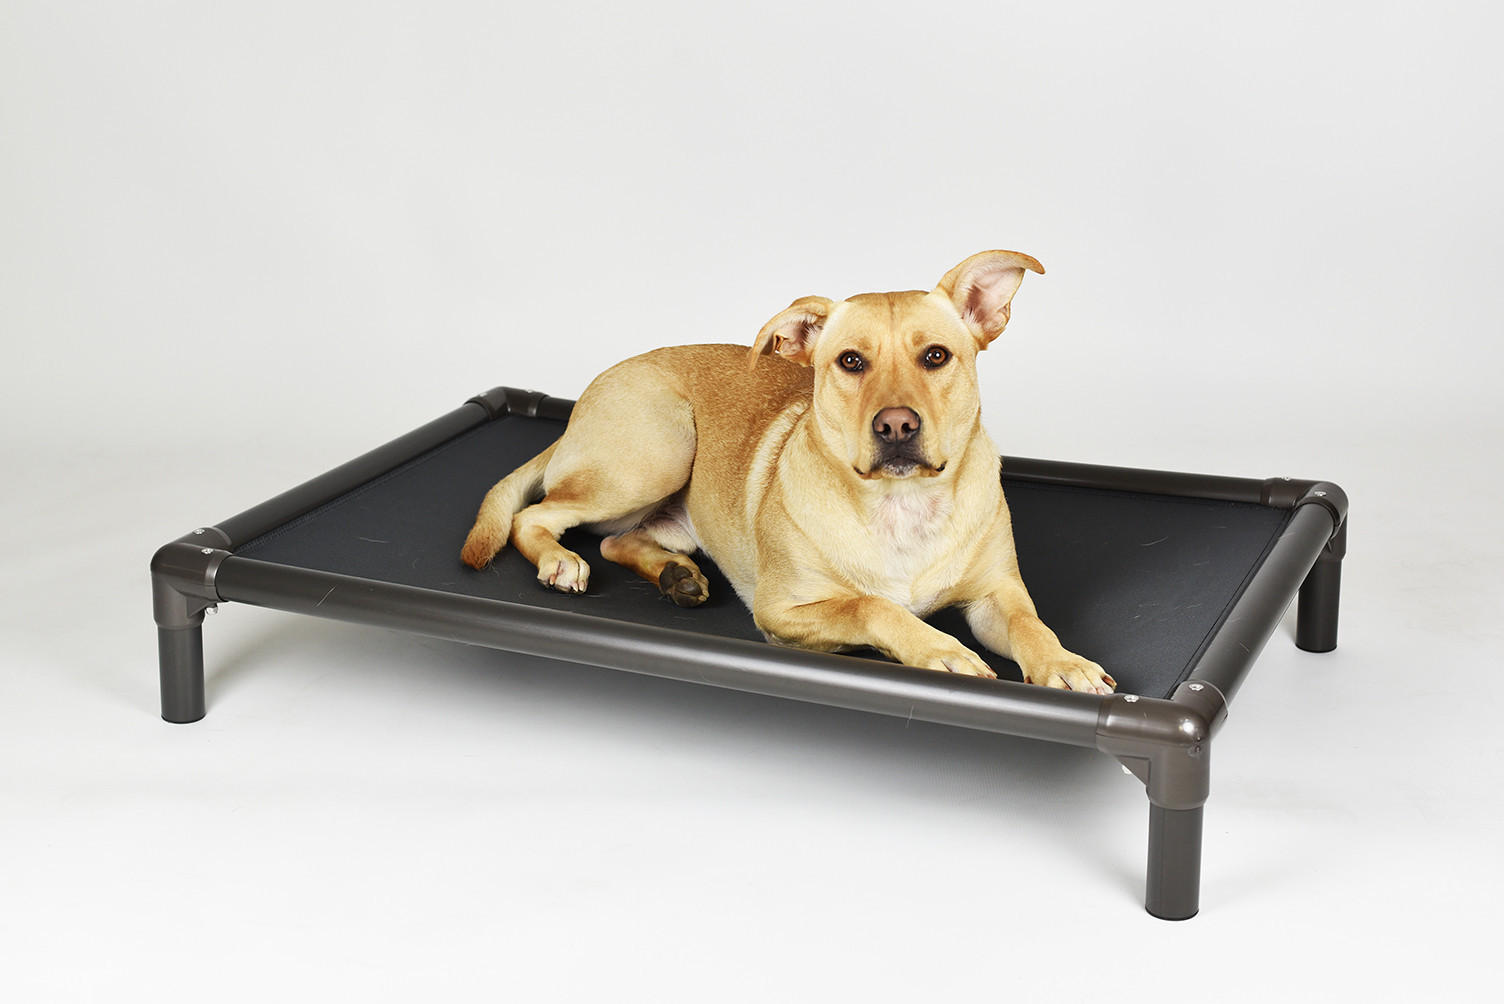 Chew Proof Dog Bed | Elevated Dog Beds | Tuff Bed